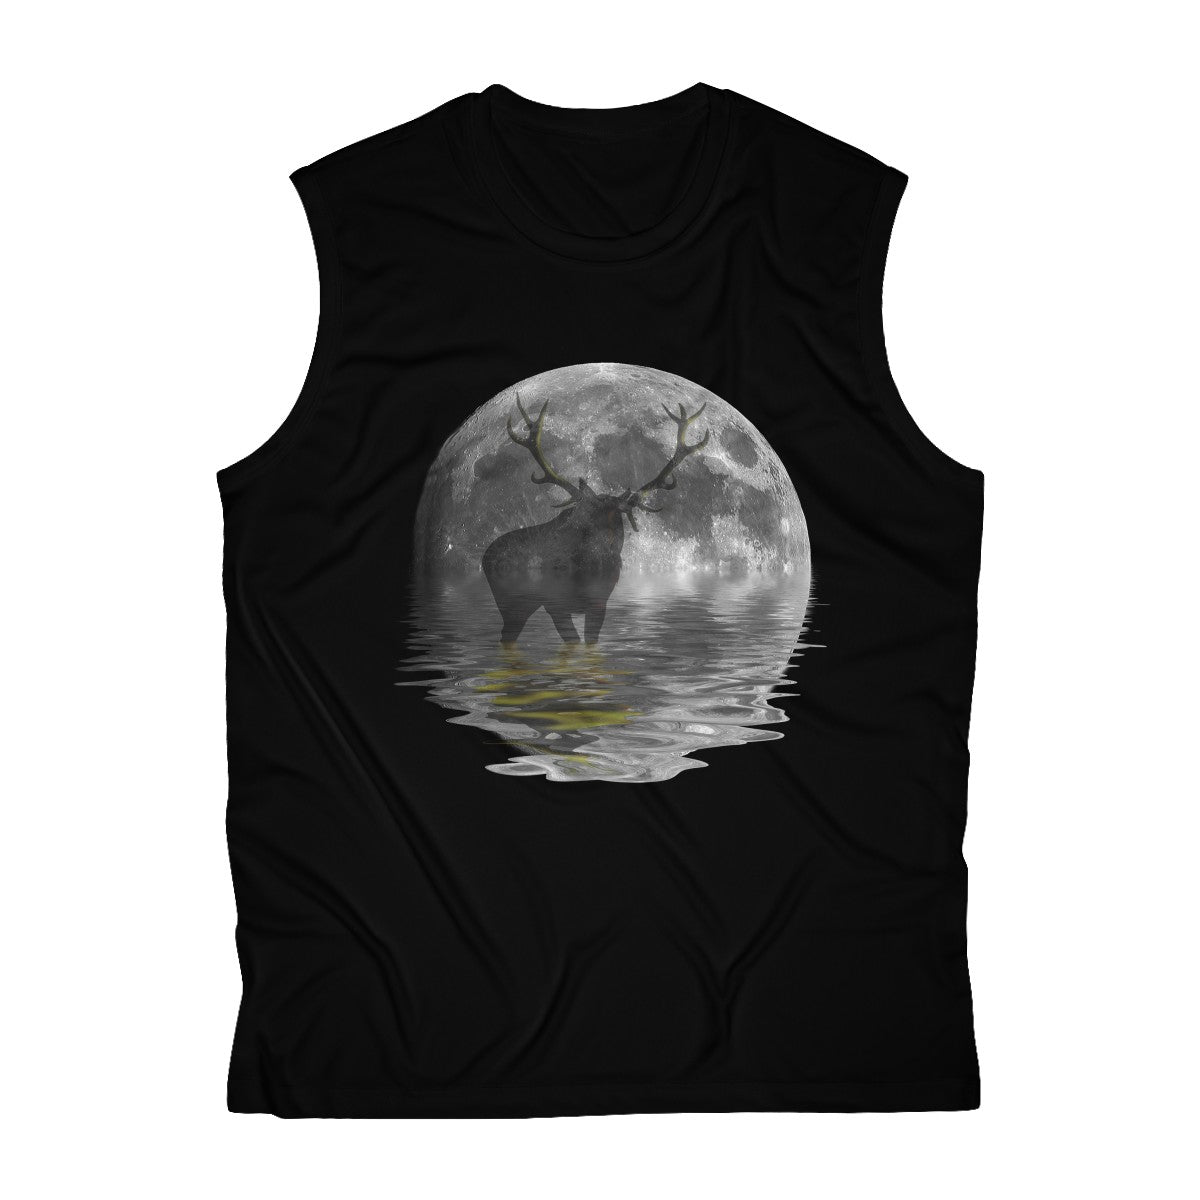 Moose Men's Sleeveless Performance Tee